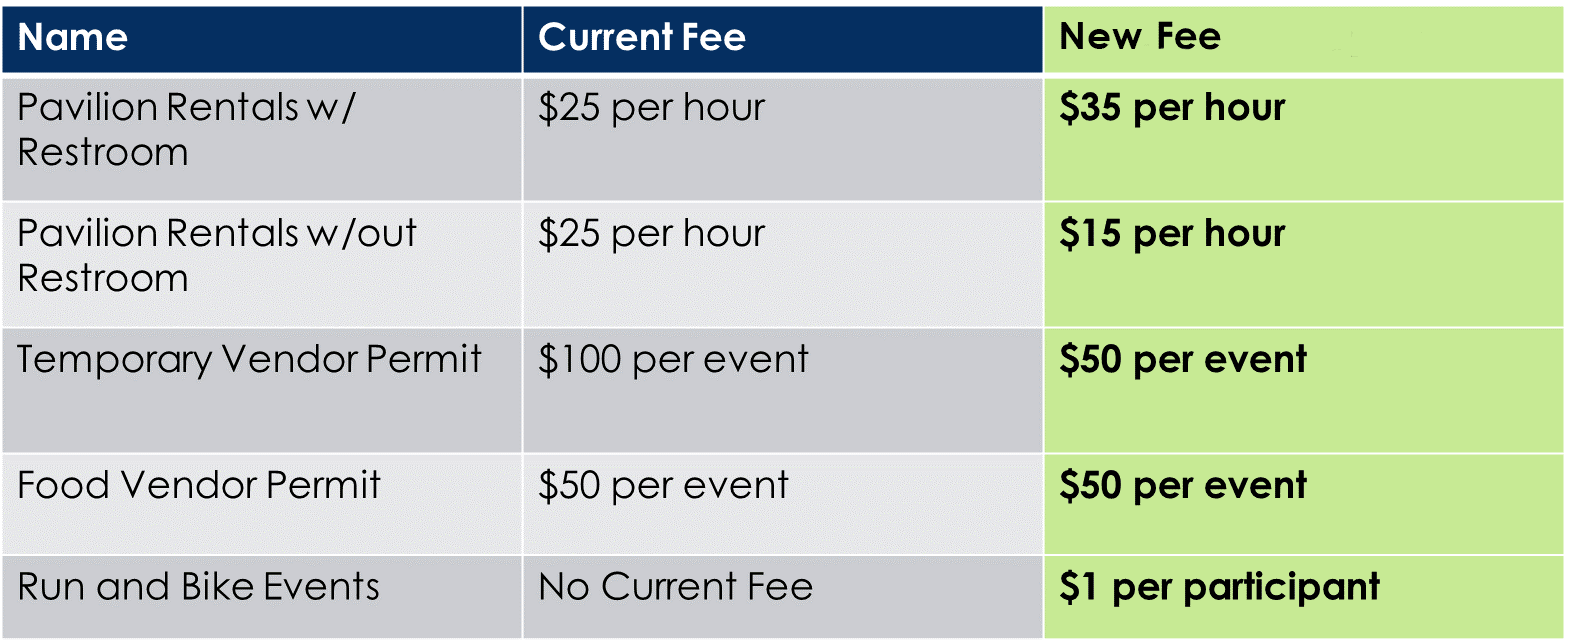 Park Pavillion Rental Fees